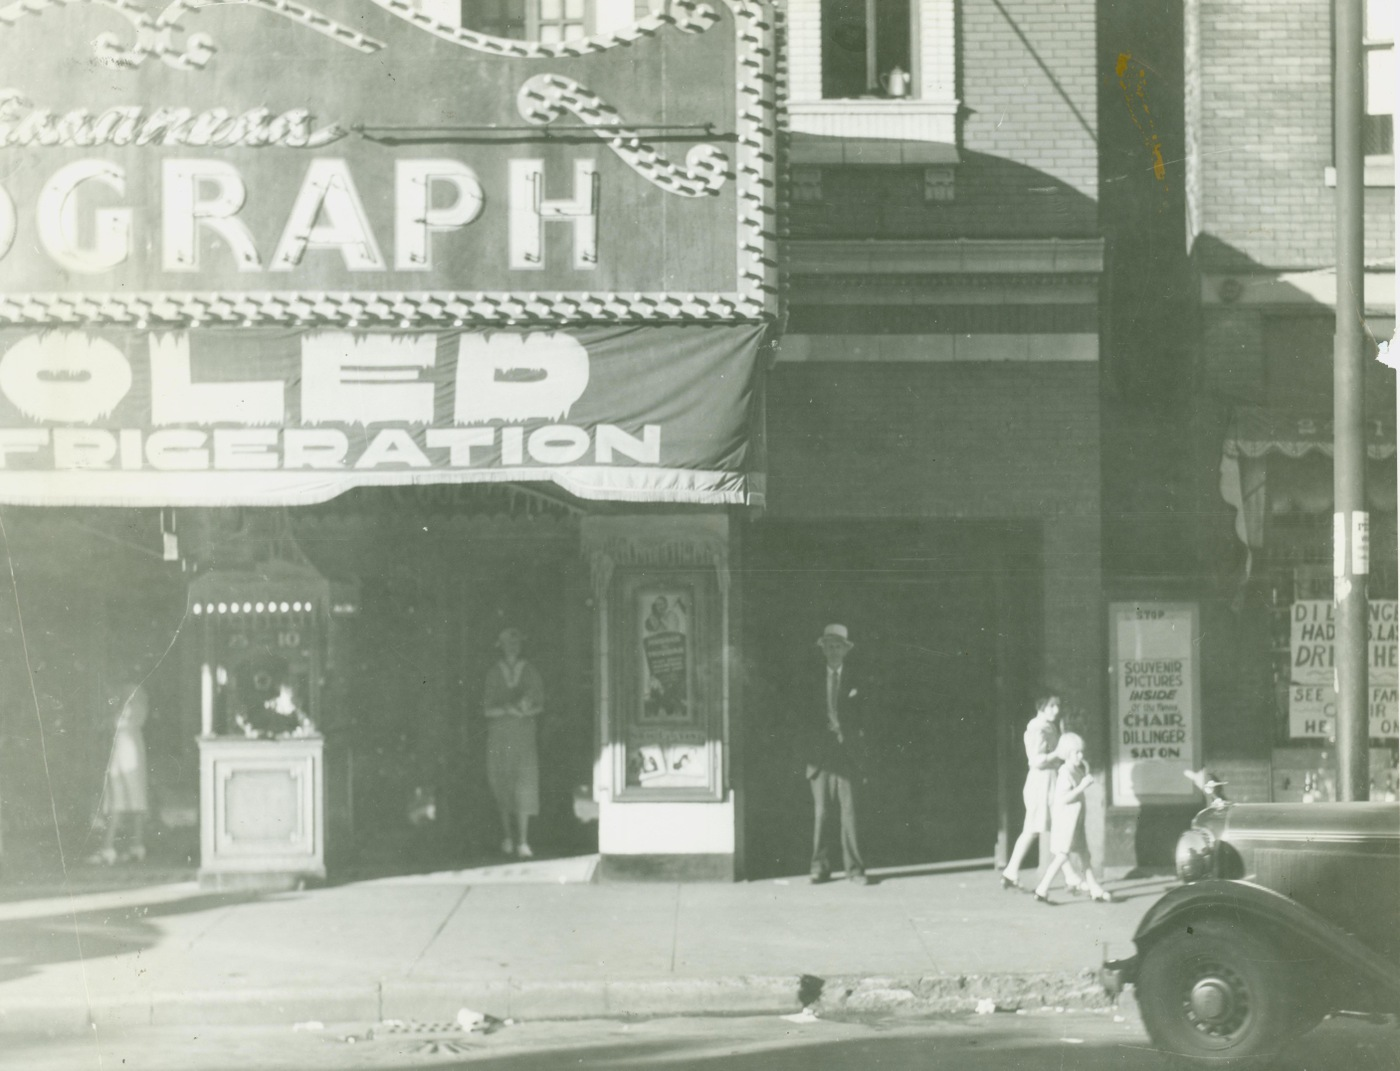 "The Biograph Theater in Chicago, Illinois, where John Dillinger spent the last hours of his life seeing a gangster movie ""Manhattan Melodrama"" with two women companions on the night of July 22, 1934."